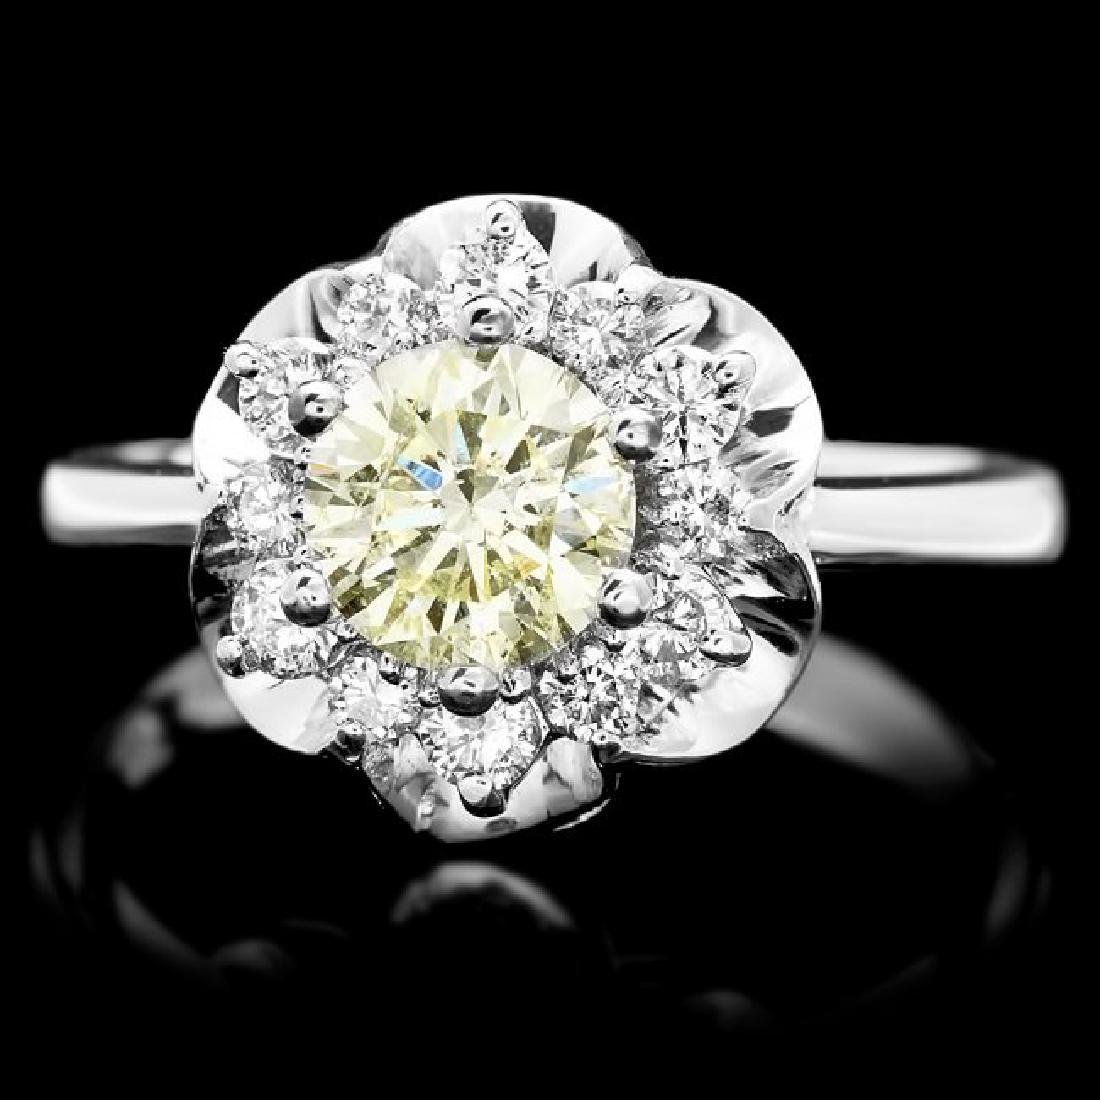 14k White Gold 1.3ct Diamond Ring